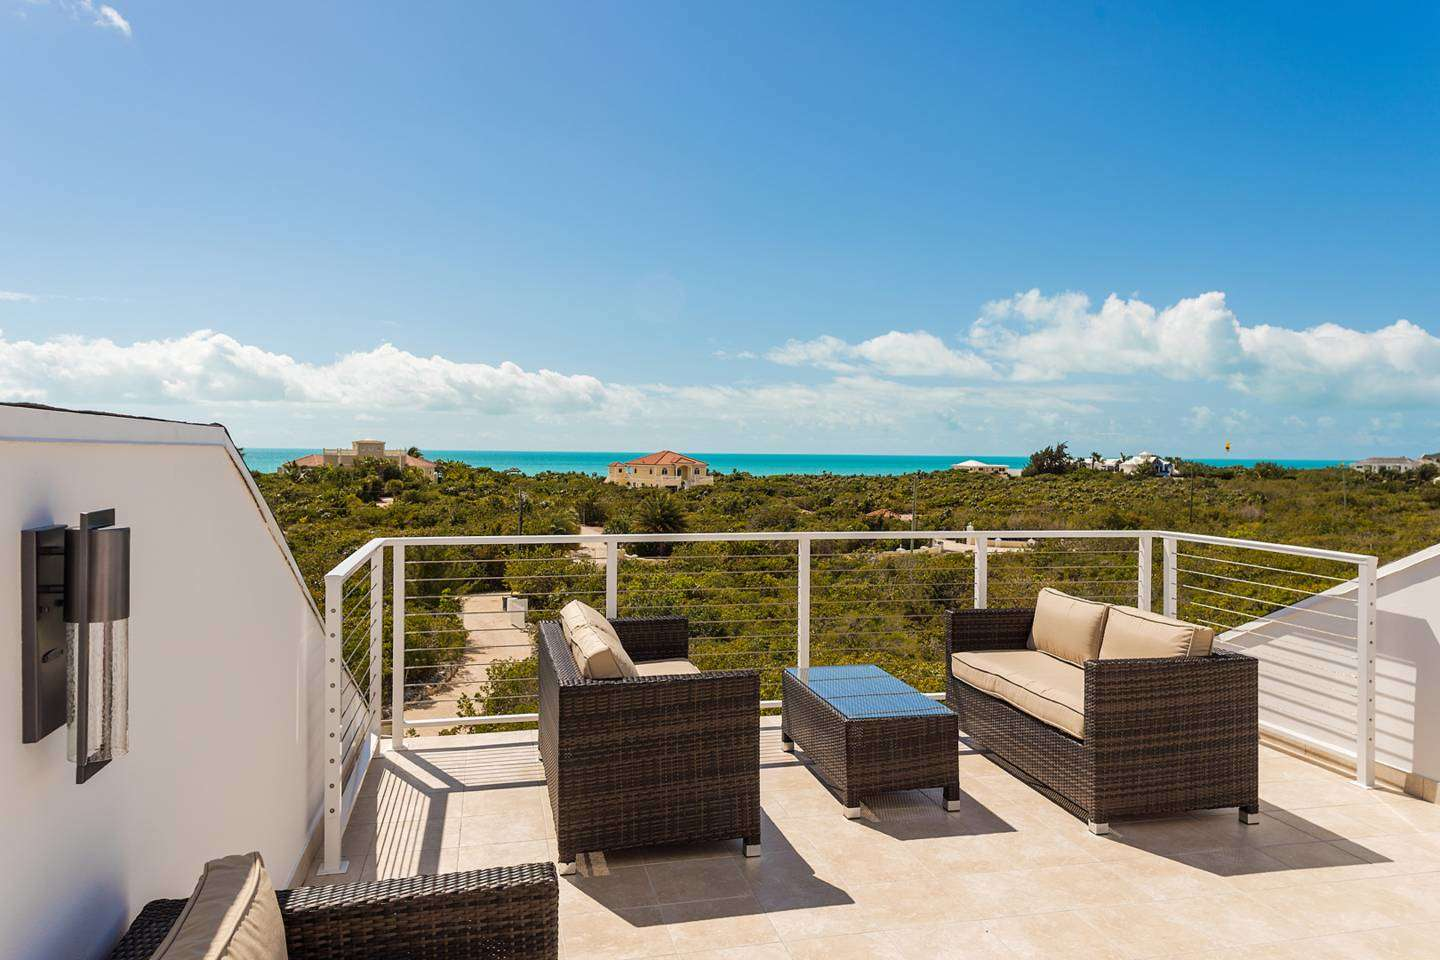 Luxury villa rentals caribbean - Turks and caicos - Providenciales - Long bay - Surf Lodge - Image 1/17